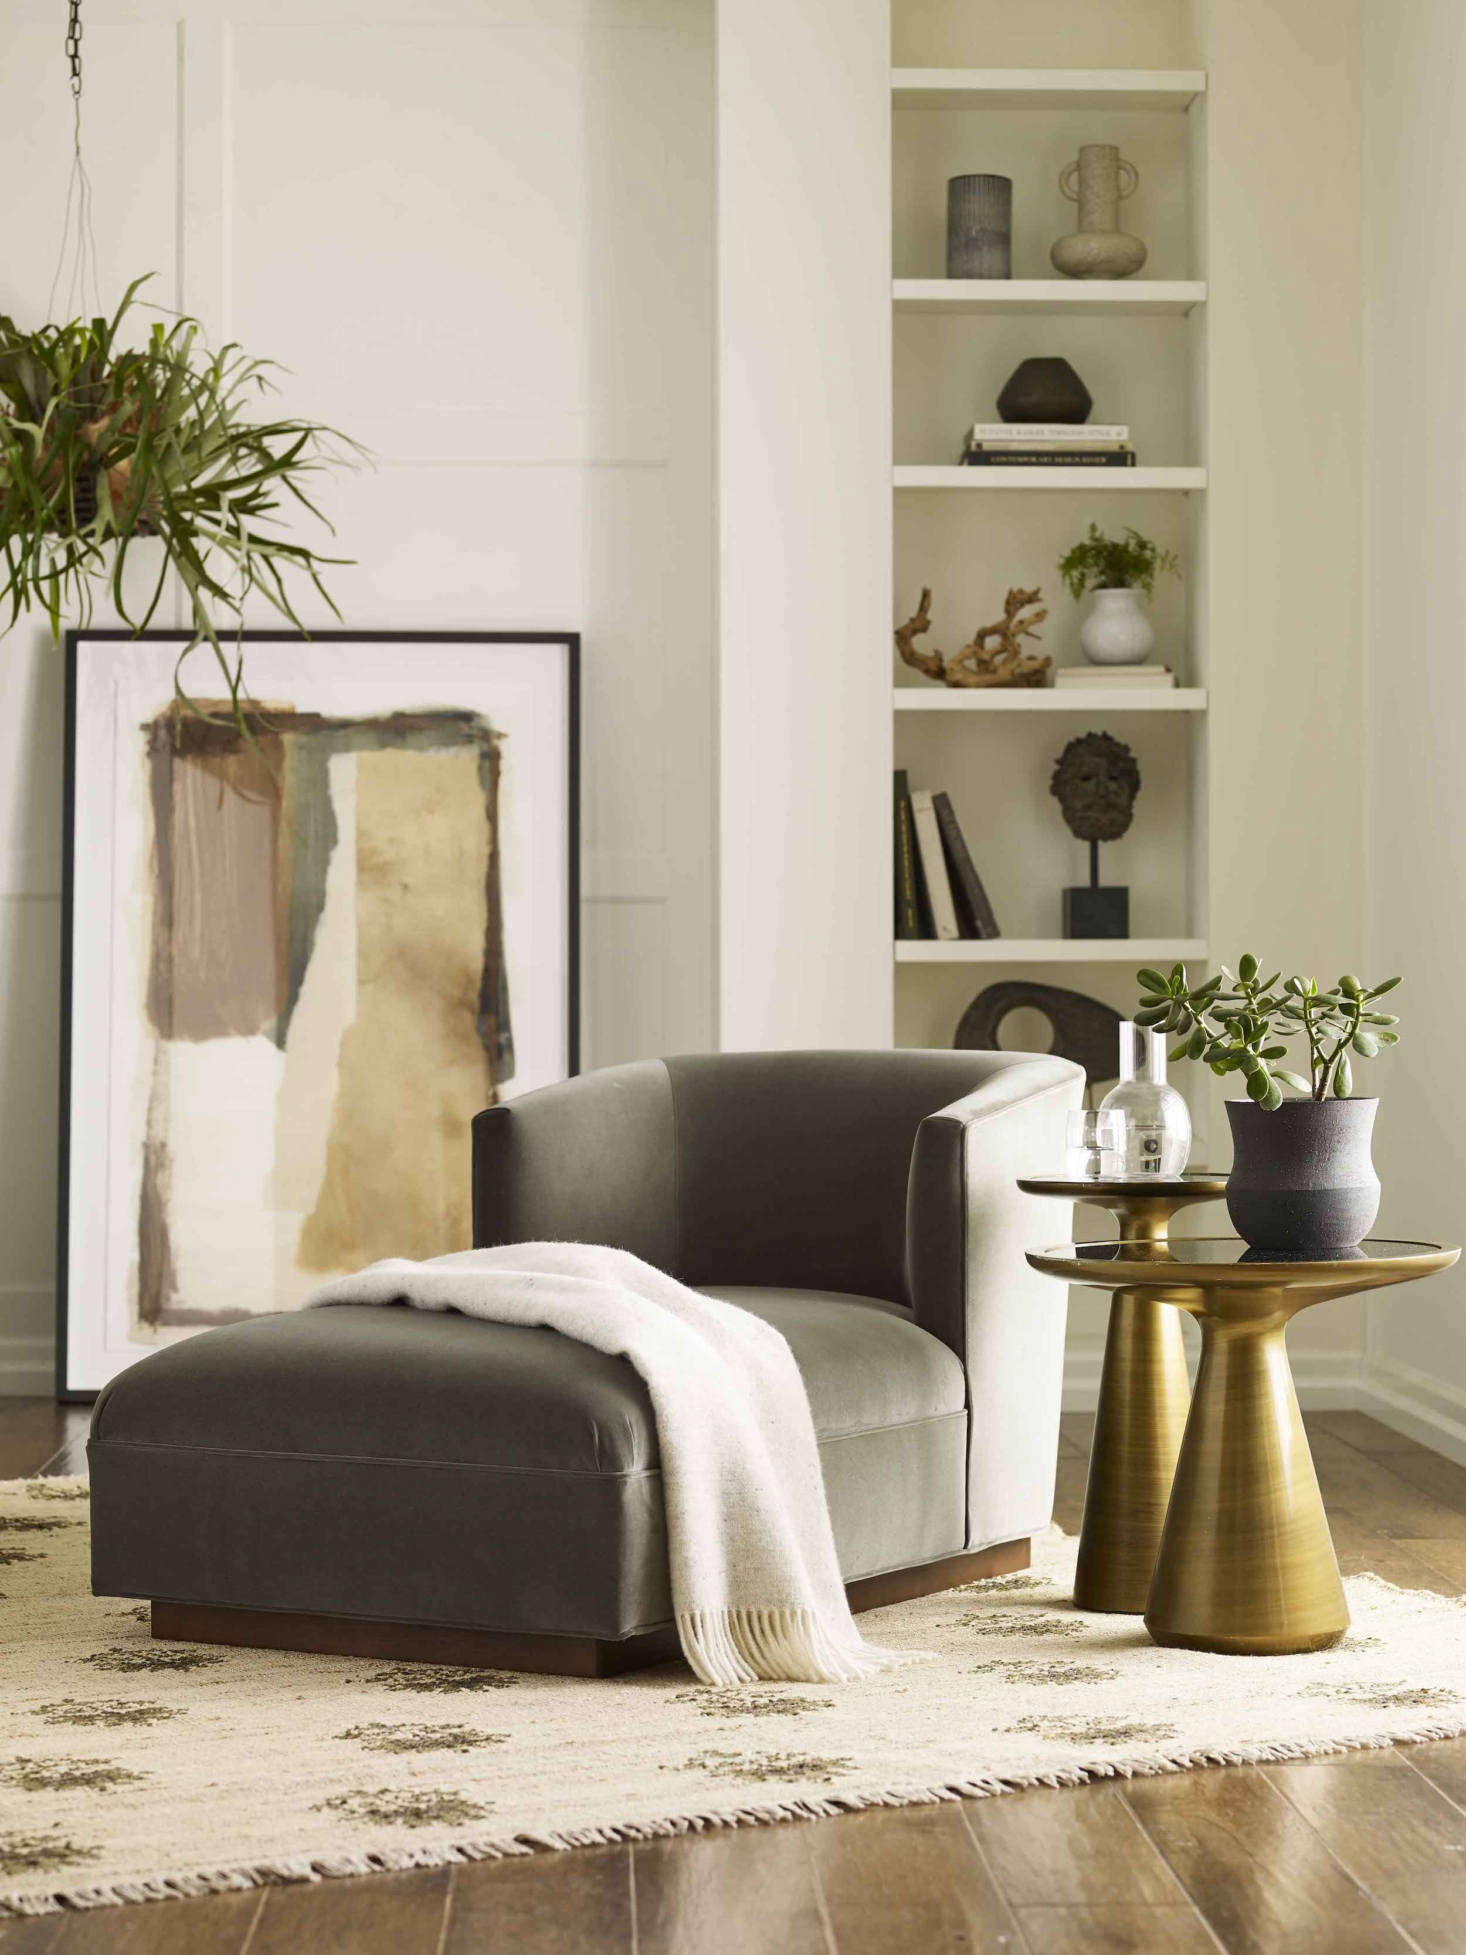 """Add a Cooper Chaise to a corner of the bedroom or living area and you have a ready-made retreat for a bit of calm and quiet. This one is shown in """"fern""""-hued velvet, paired with the sculptural Addie Side Table and Addie Pull-up Table in bronze and the hand-knotted Disha Rug (one of four new rugs made in collaboration with sustainable rug maker Obeetee)."""